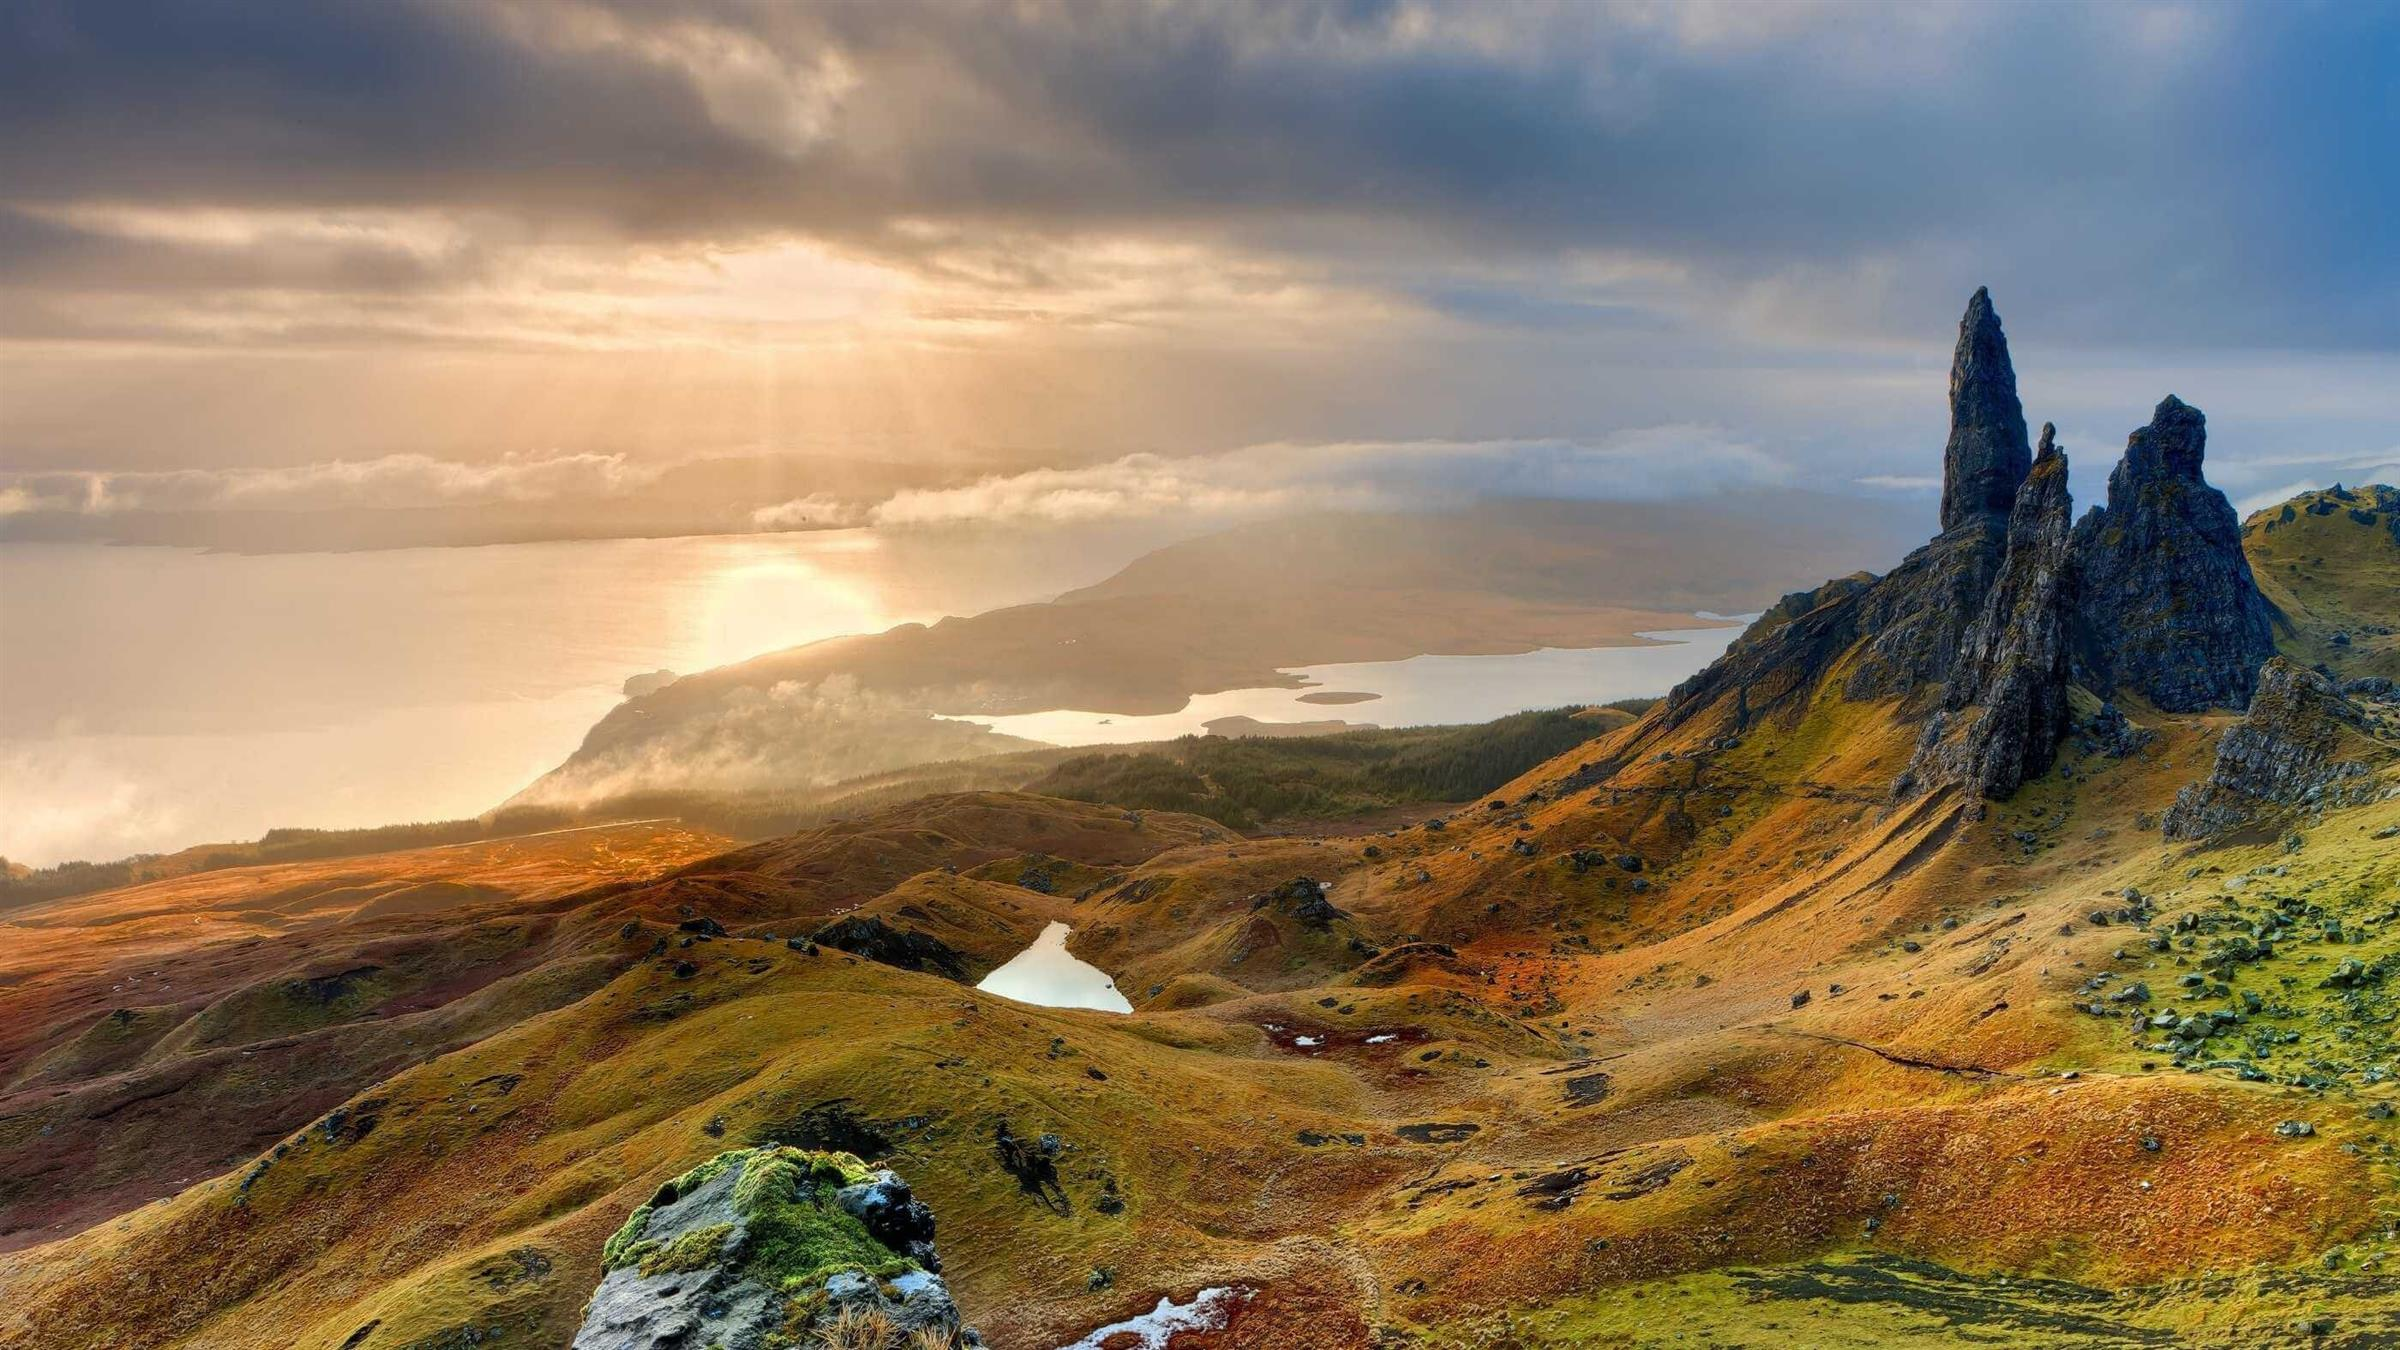 2400x1350 Scottish Highlands Graceful Mountain in the United Kingdom HD Wallpapers